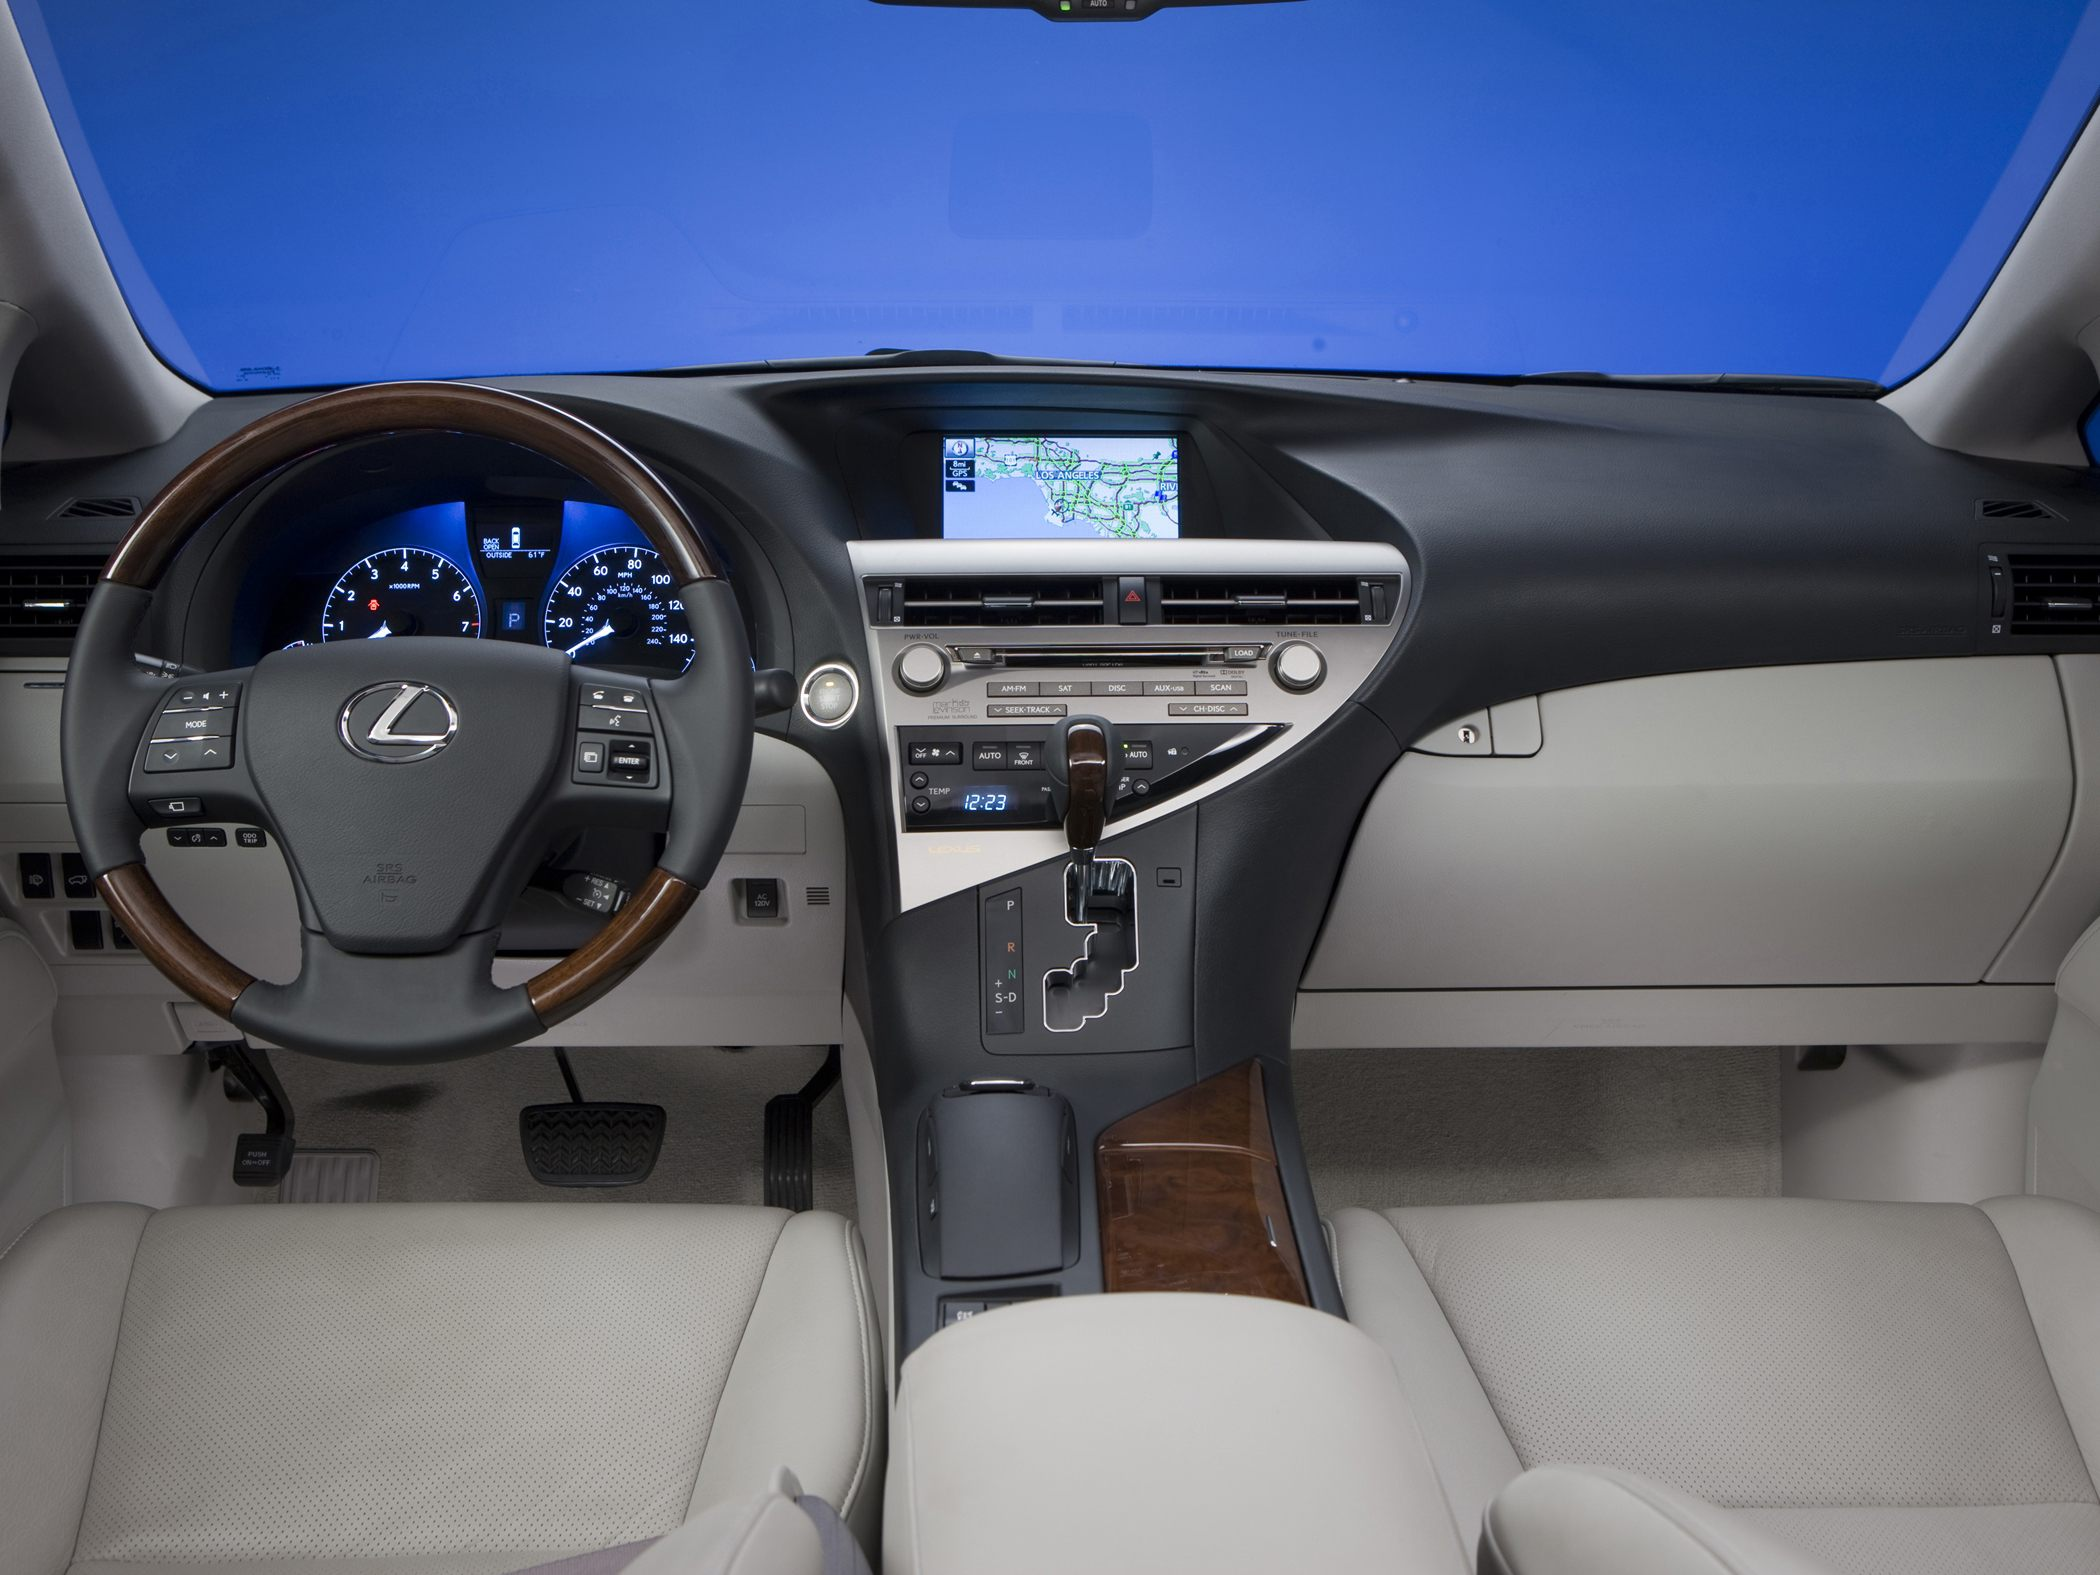 2011 Lexus RX 350 Information and photos ZombieDrive